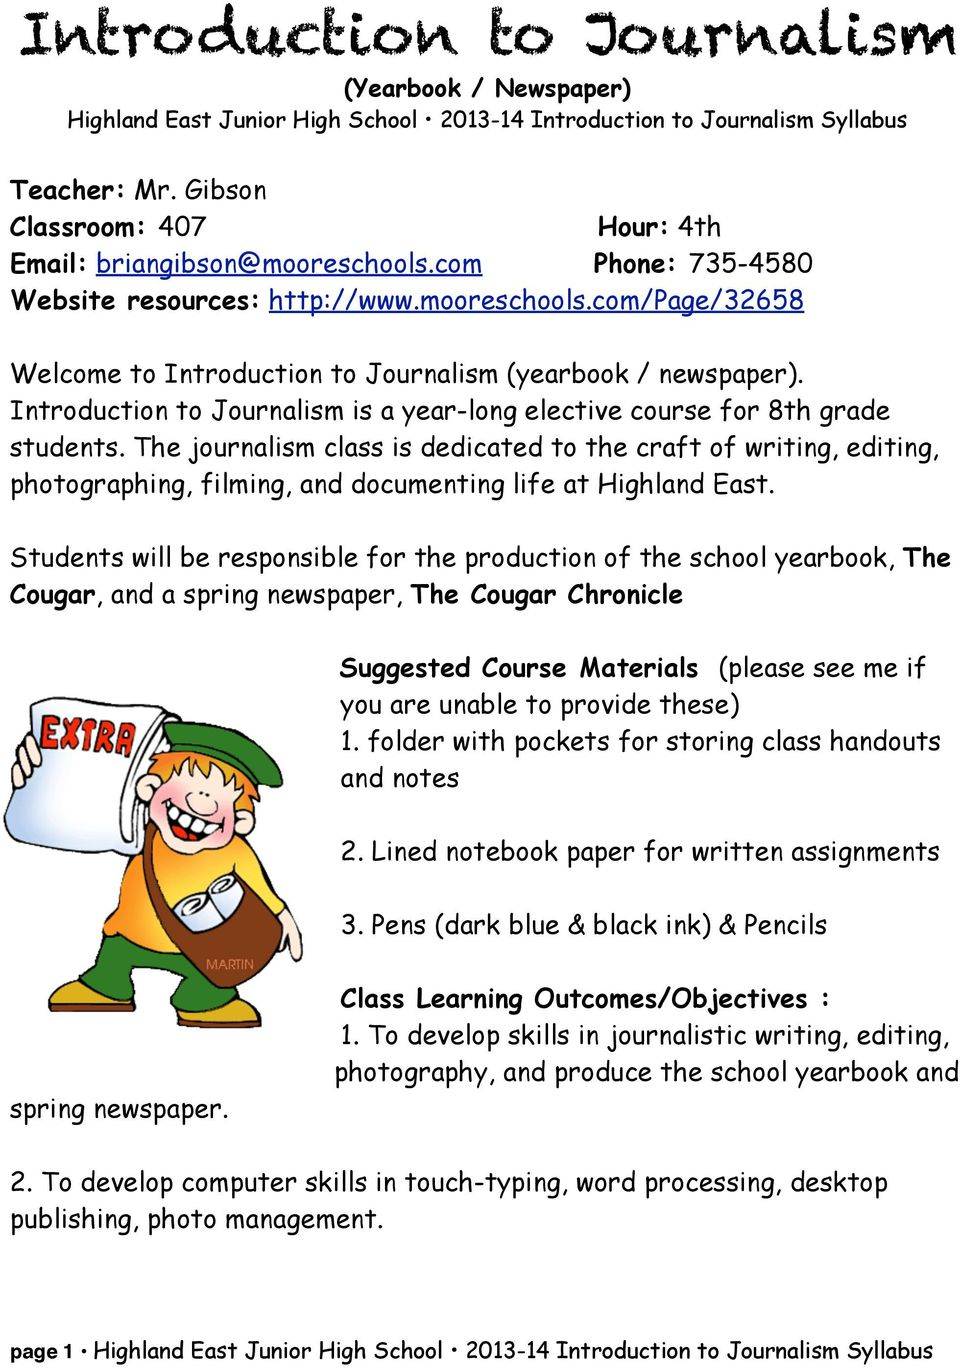 Introduction to Journalism is a year-long elective course for 8th grade students.